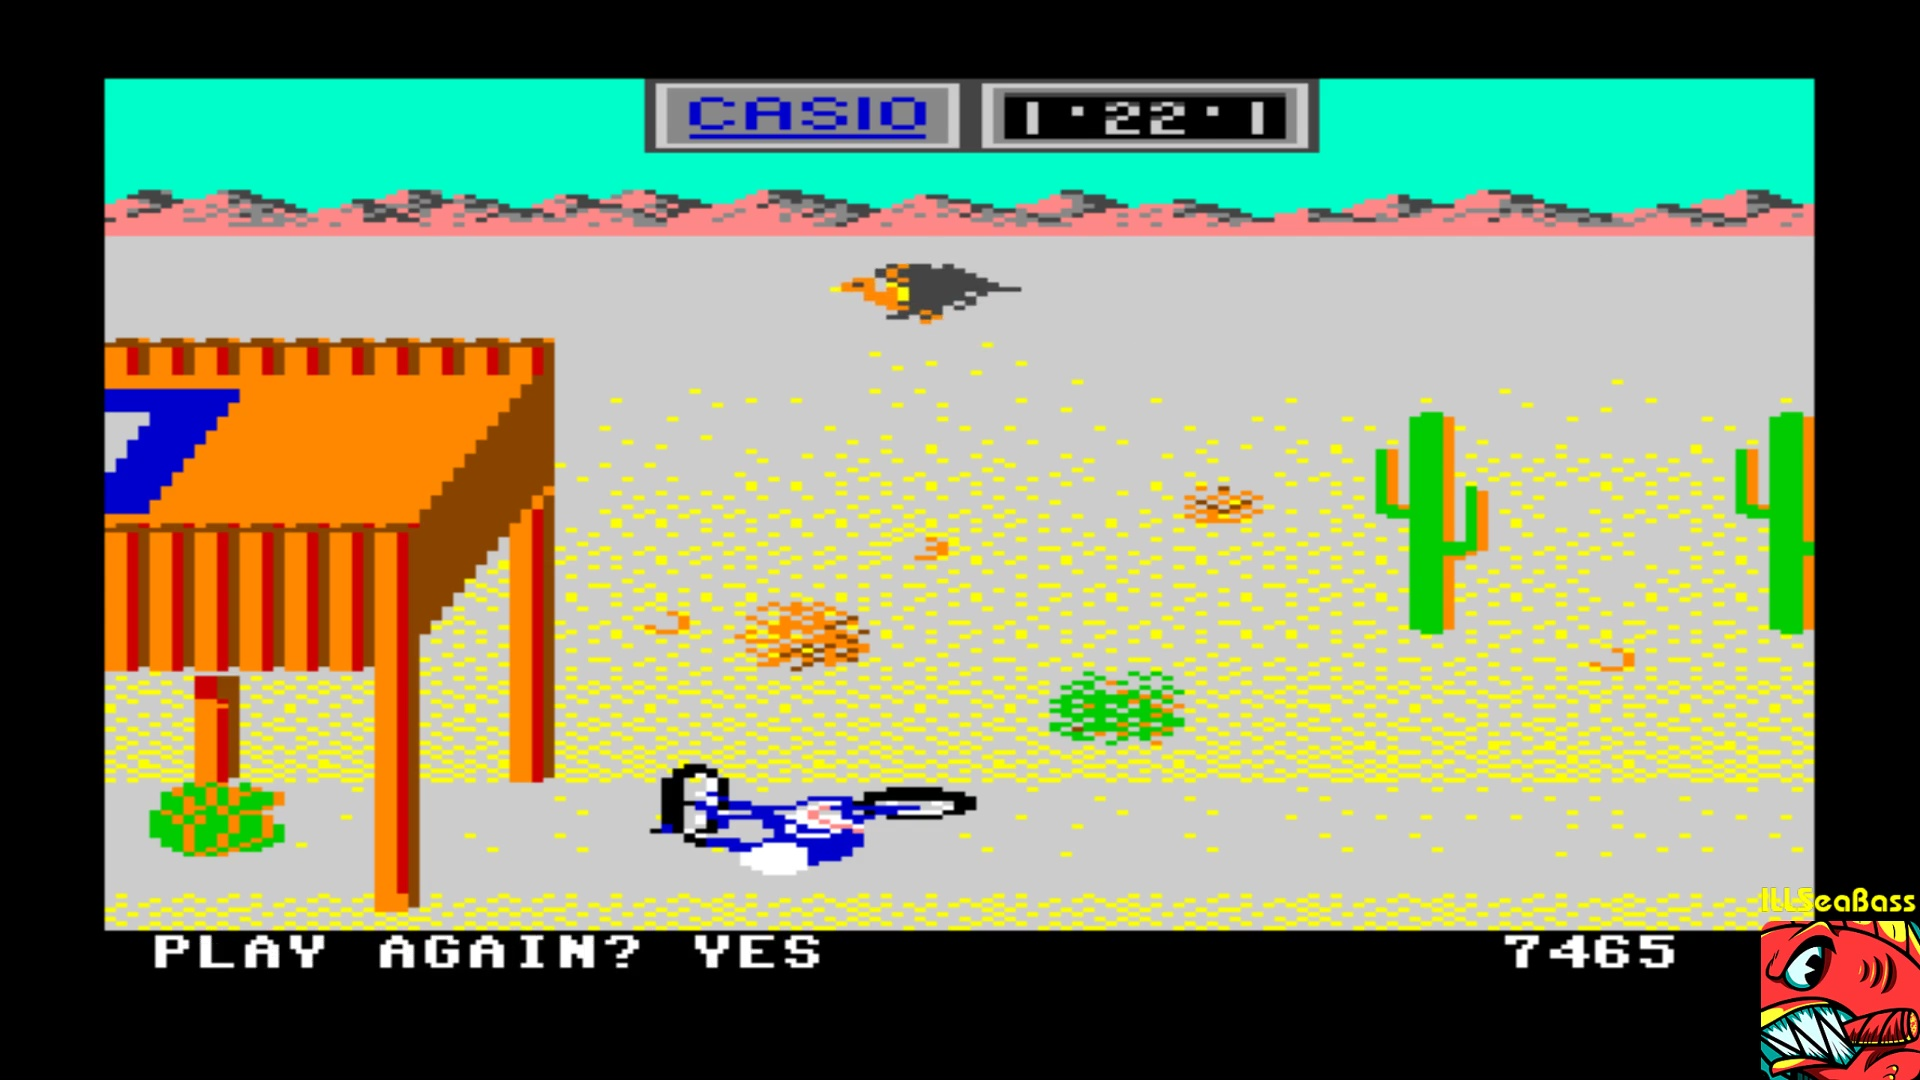 ILLSeaBass: California Games: BMX (Commodore 64 Emulated) 7,465 points on 2018-01-04 21:49:51